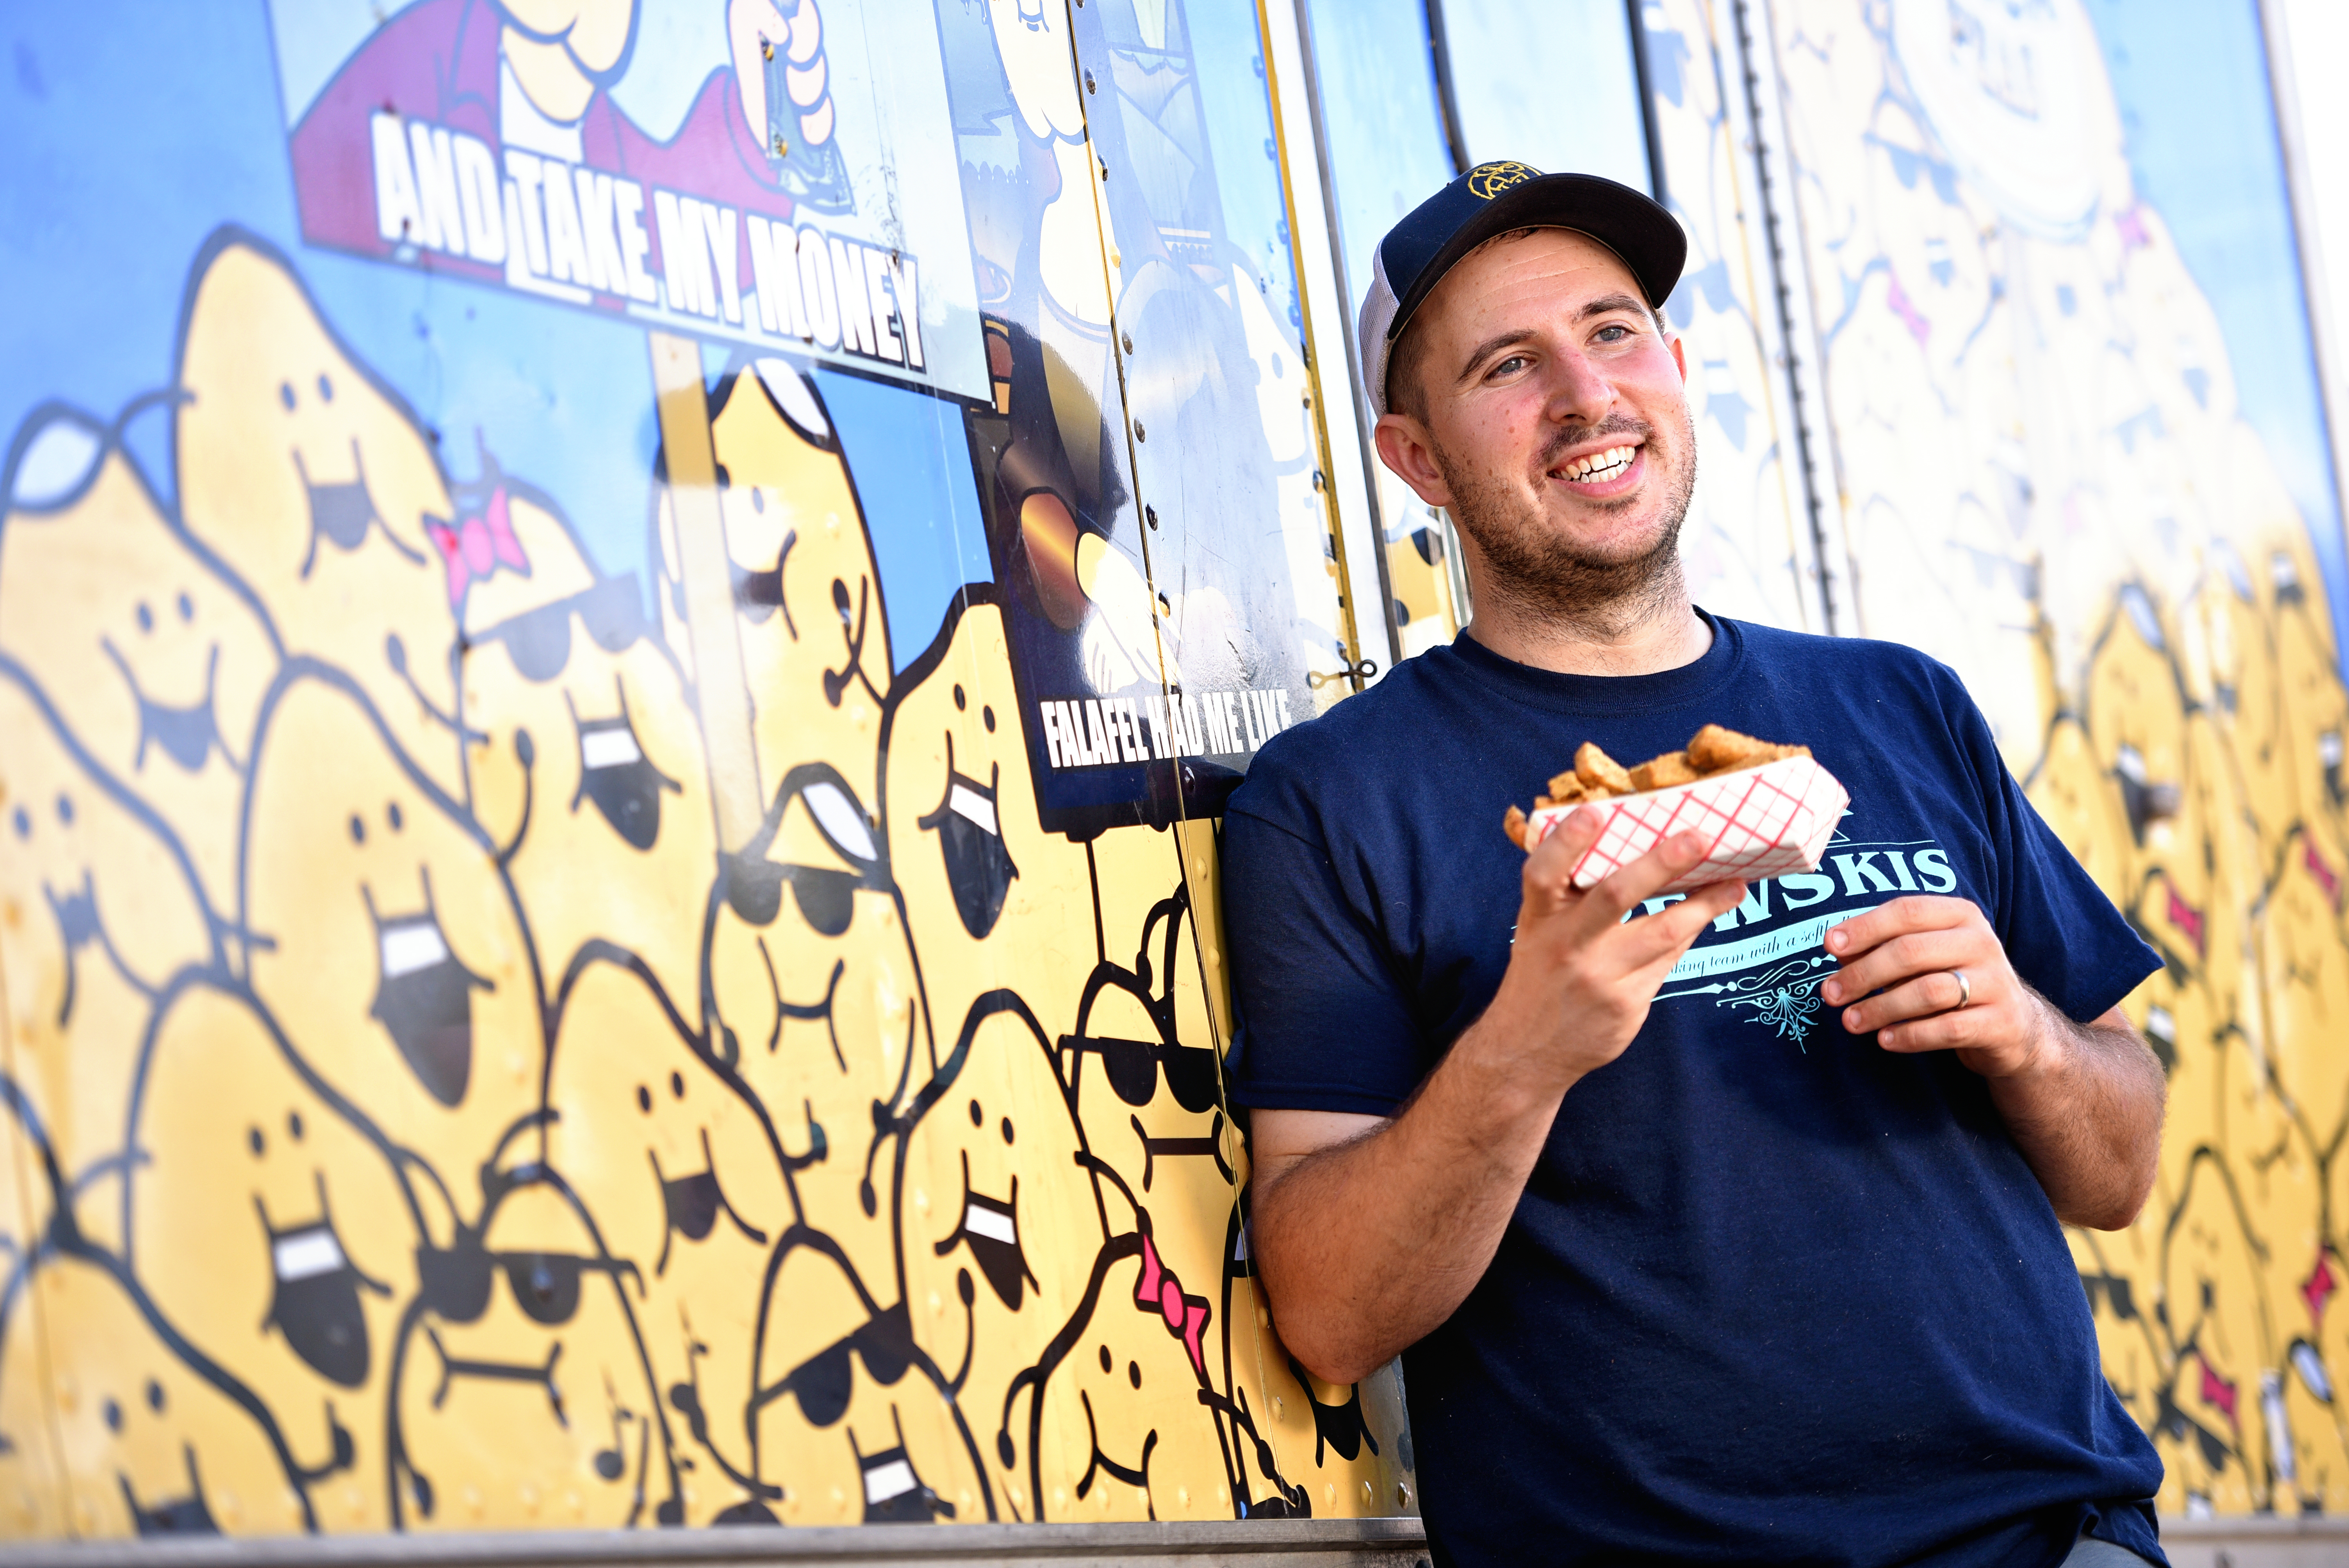 Avi Shemtov in front of his Chubby Chickpea truck, holding chickpea fries